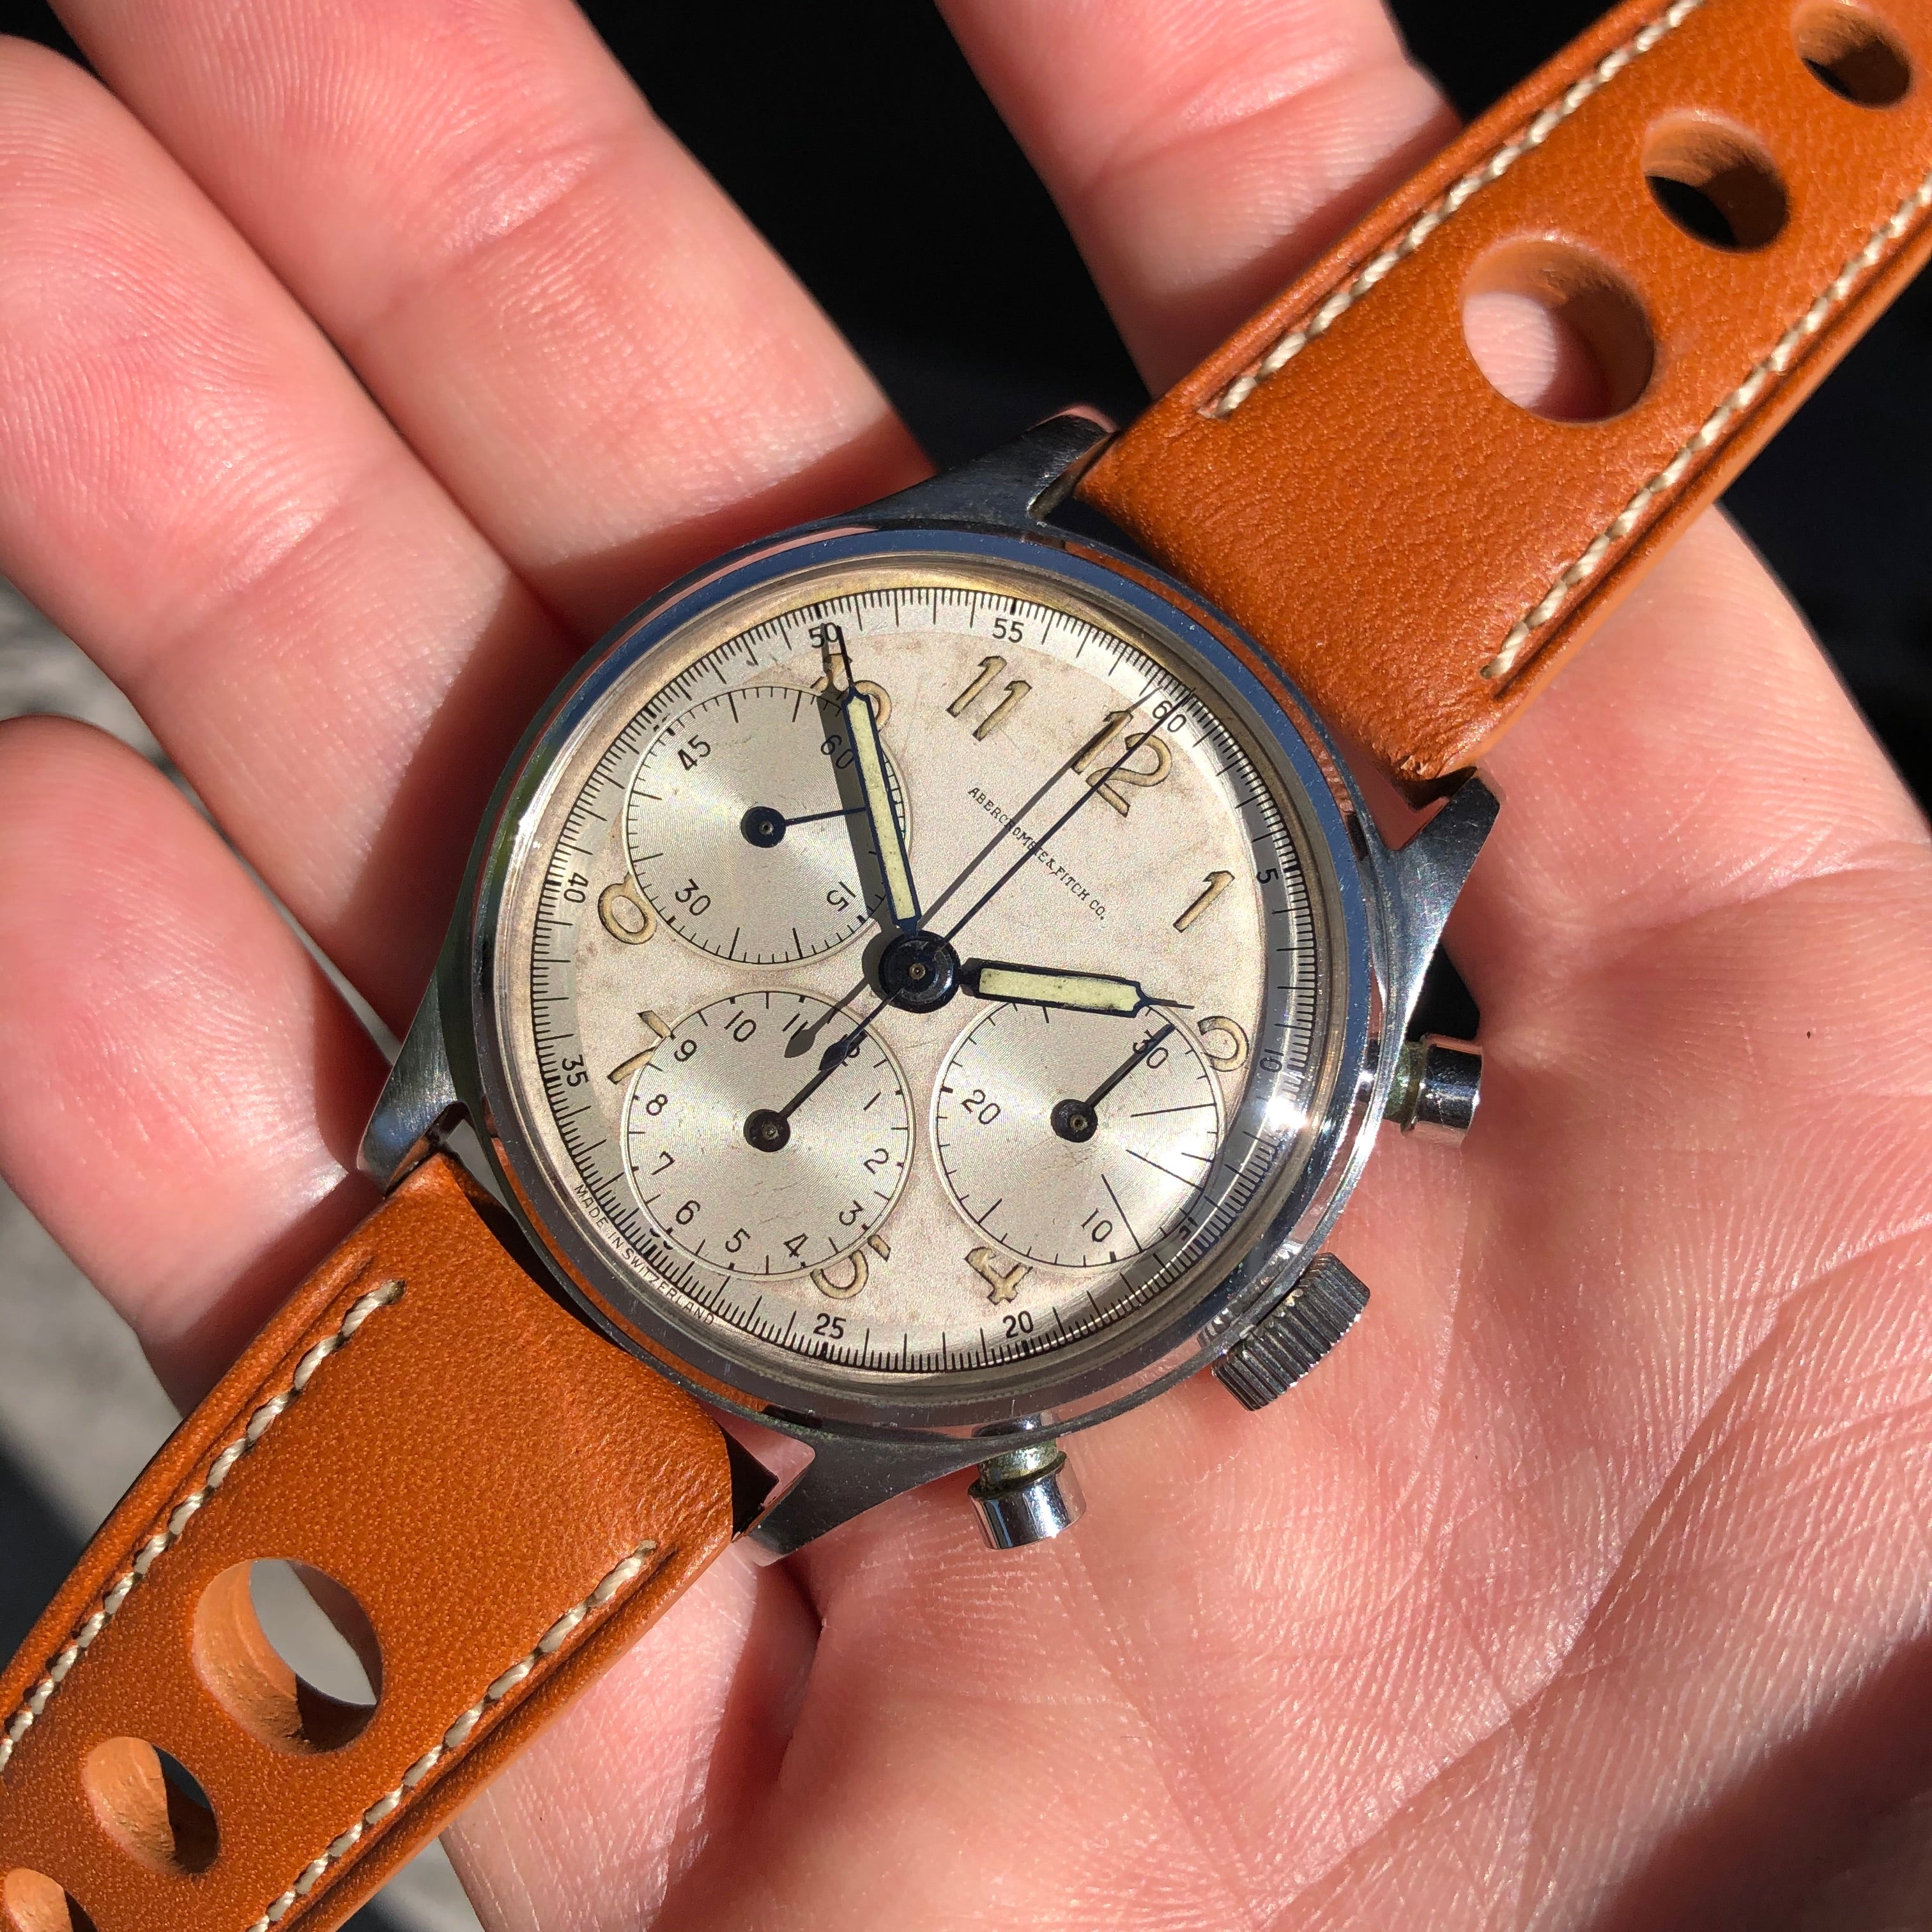 Vintage Abercrombie & Fitch Co. 59322 Heuer Chronograph Valjoux 71 Manual Steel Wristwatch - Hashtag Watch Company